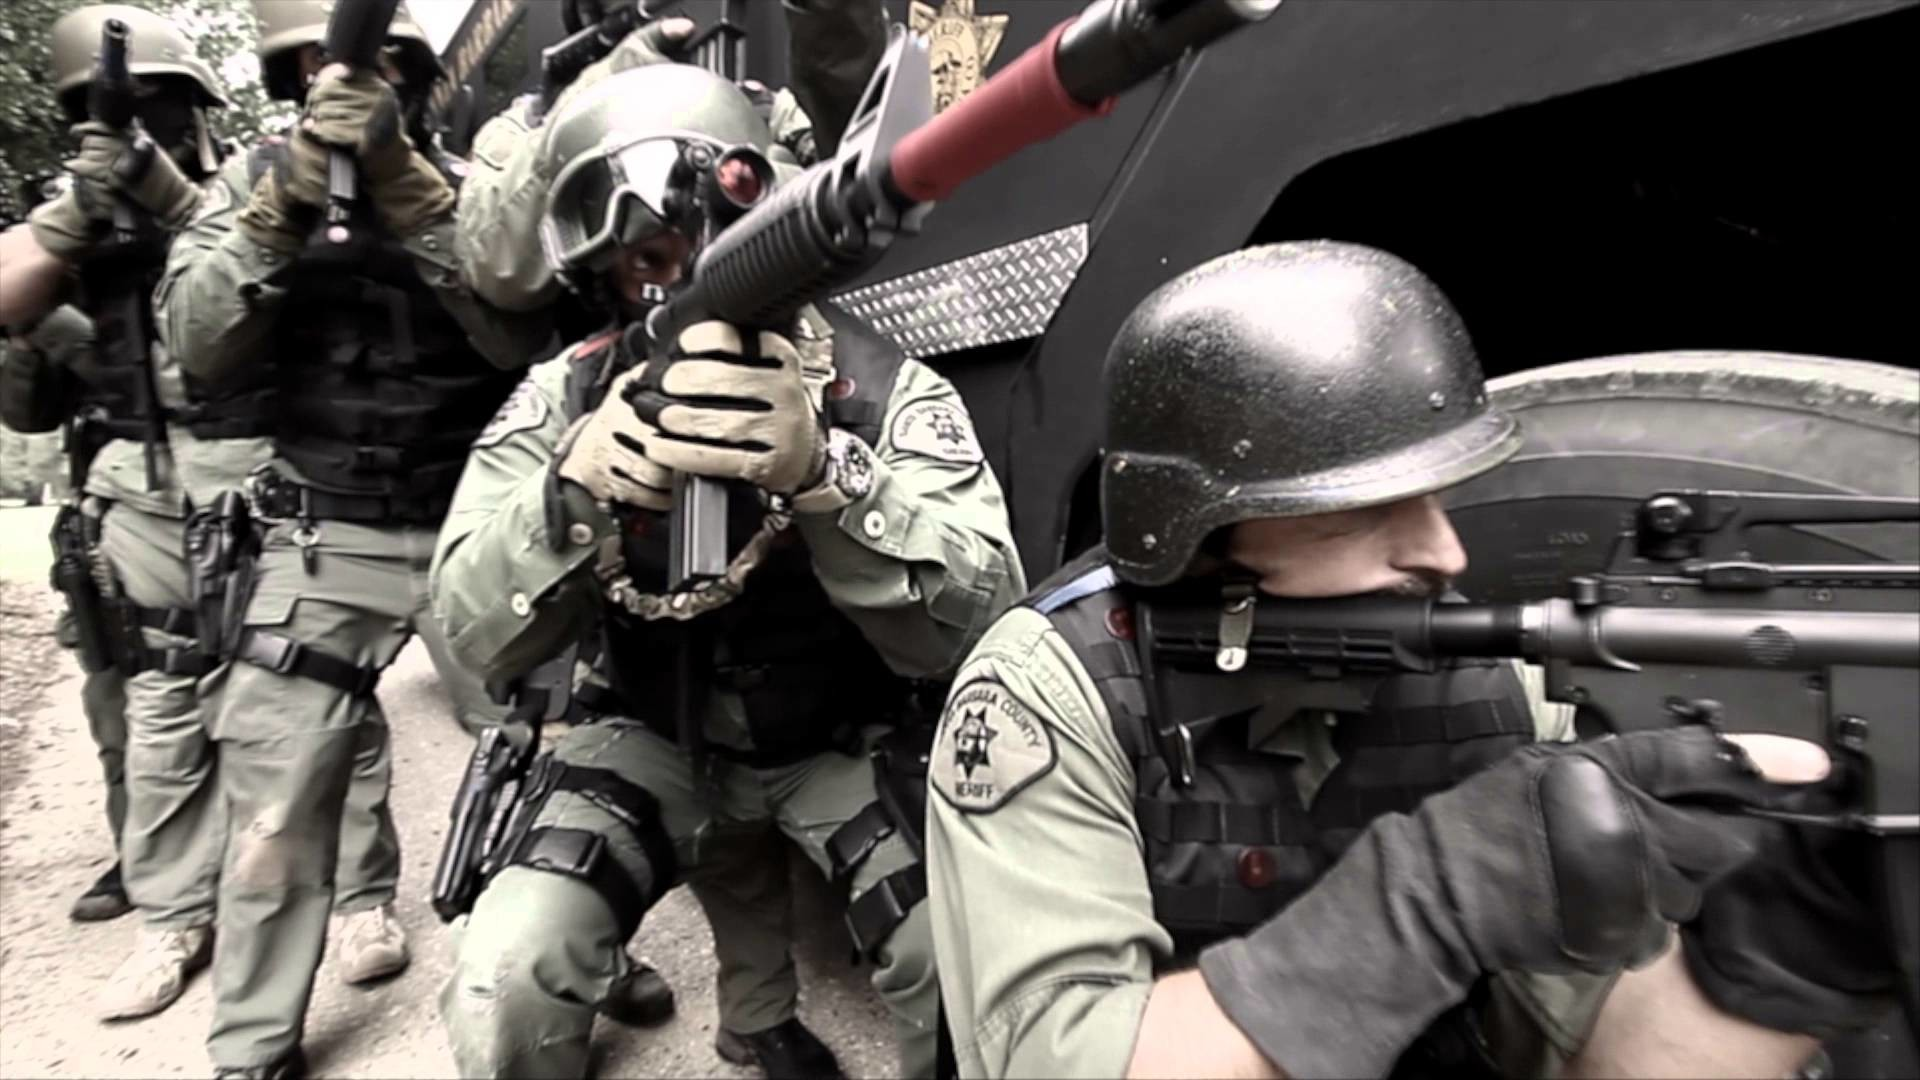 1920x1080 Swat Tactical Wallpapers Mobile On Wallpaper 1080p HD